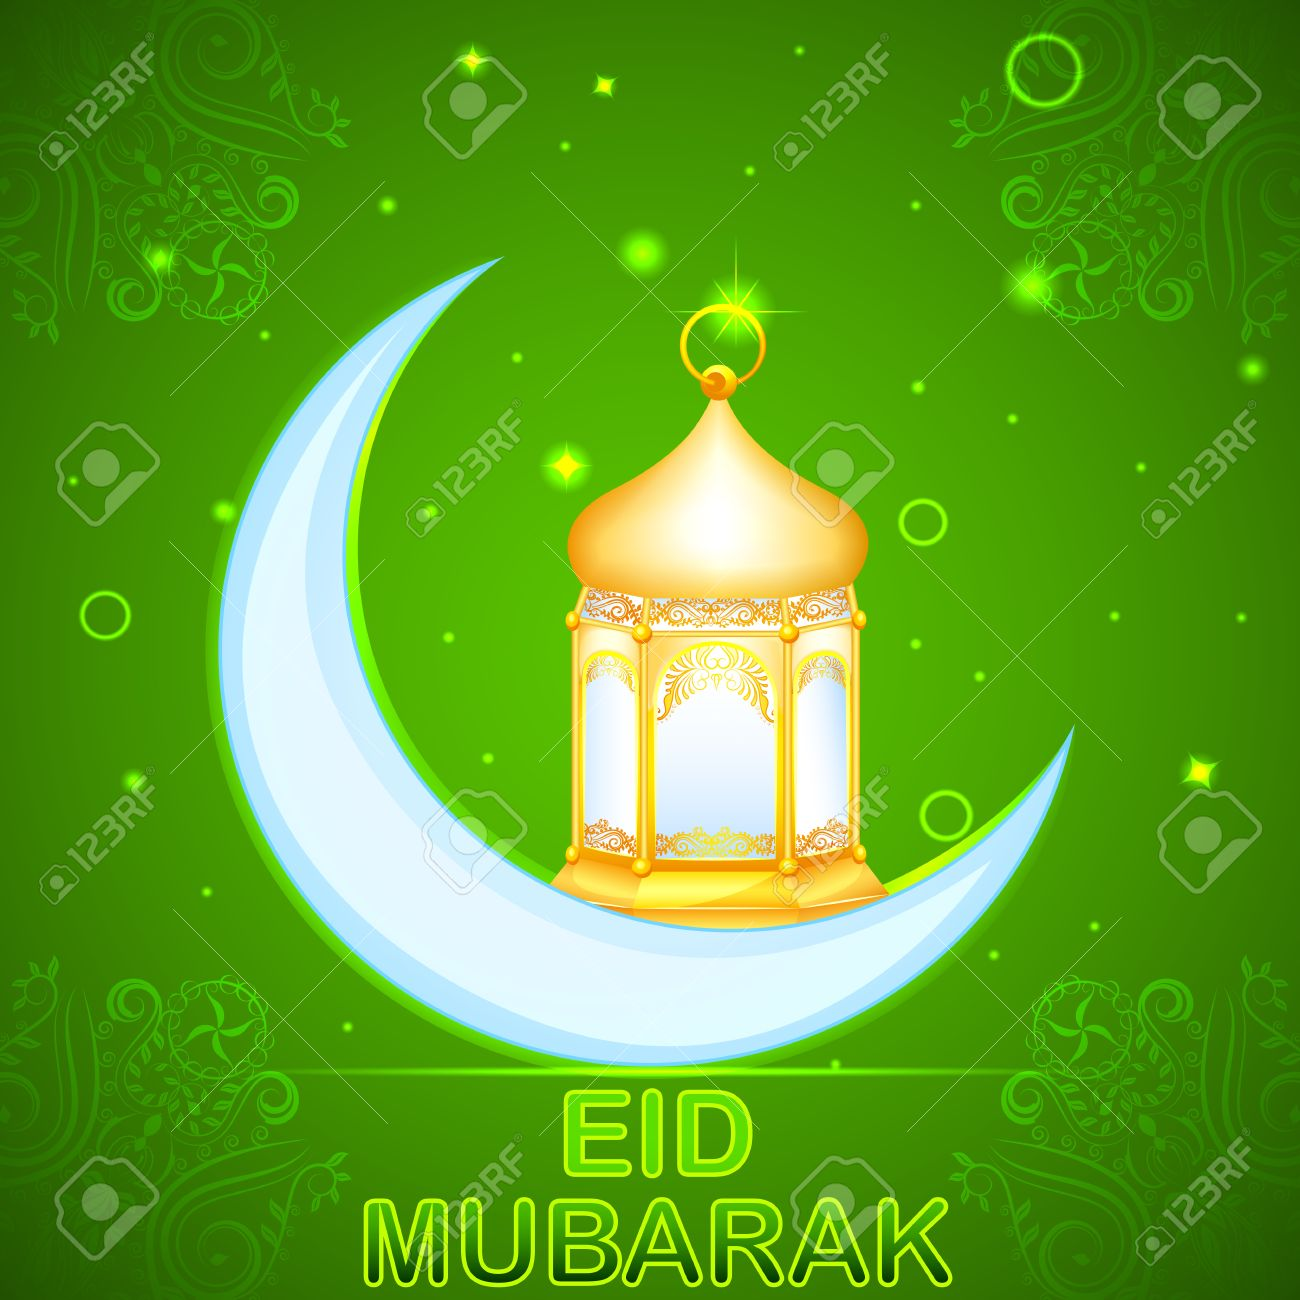 Eid mubarak images free download 2017 free download kristyandbryce Image collections